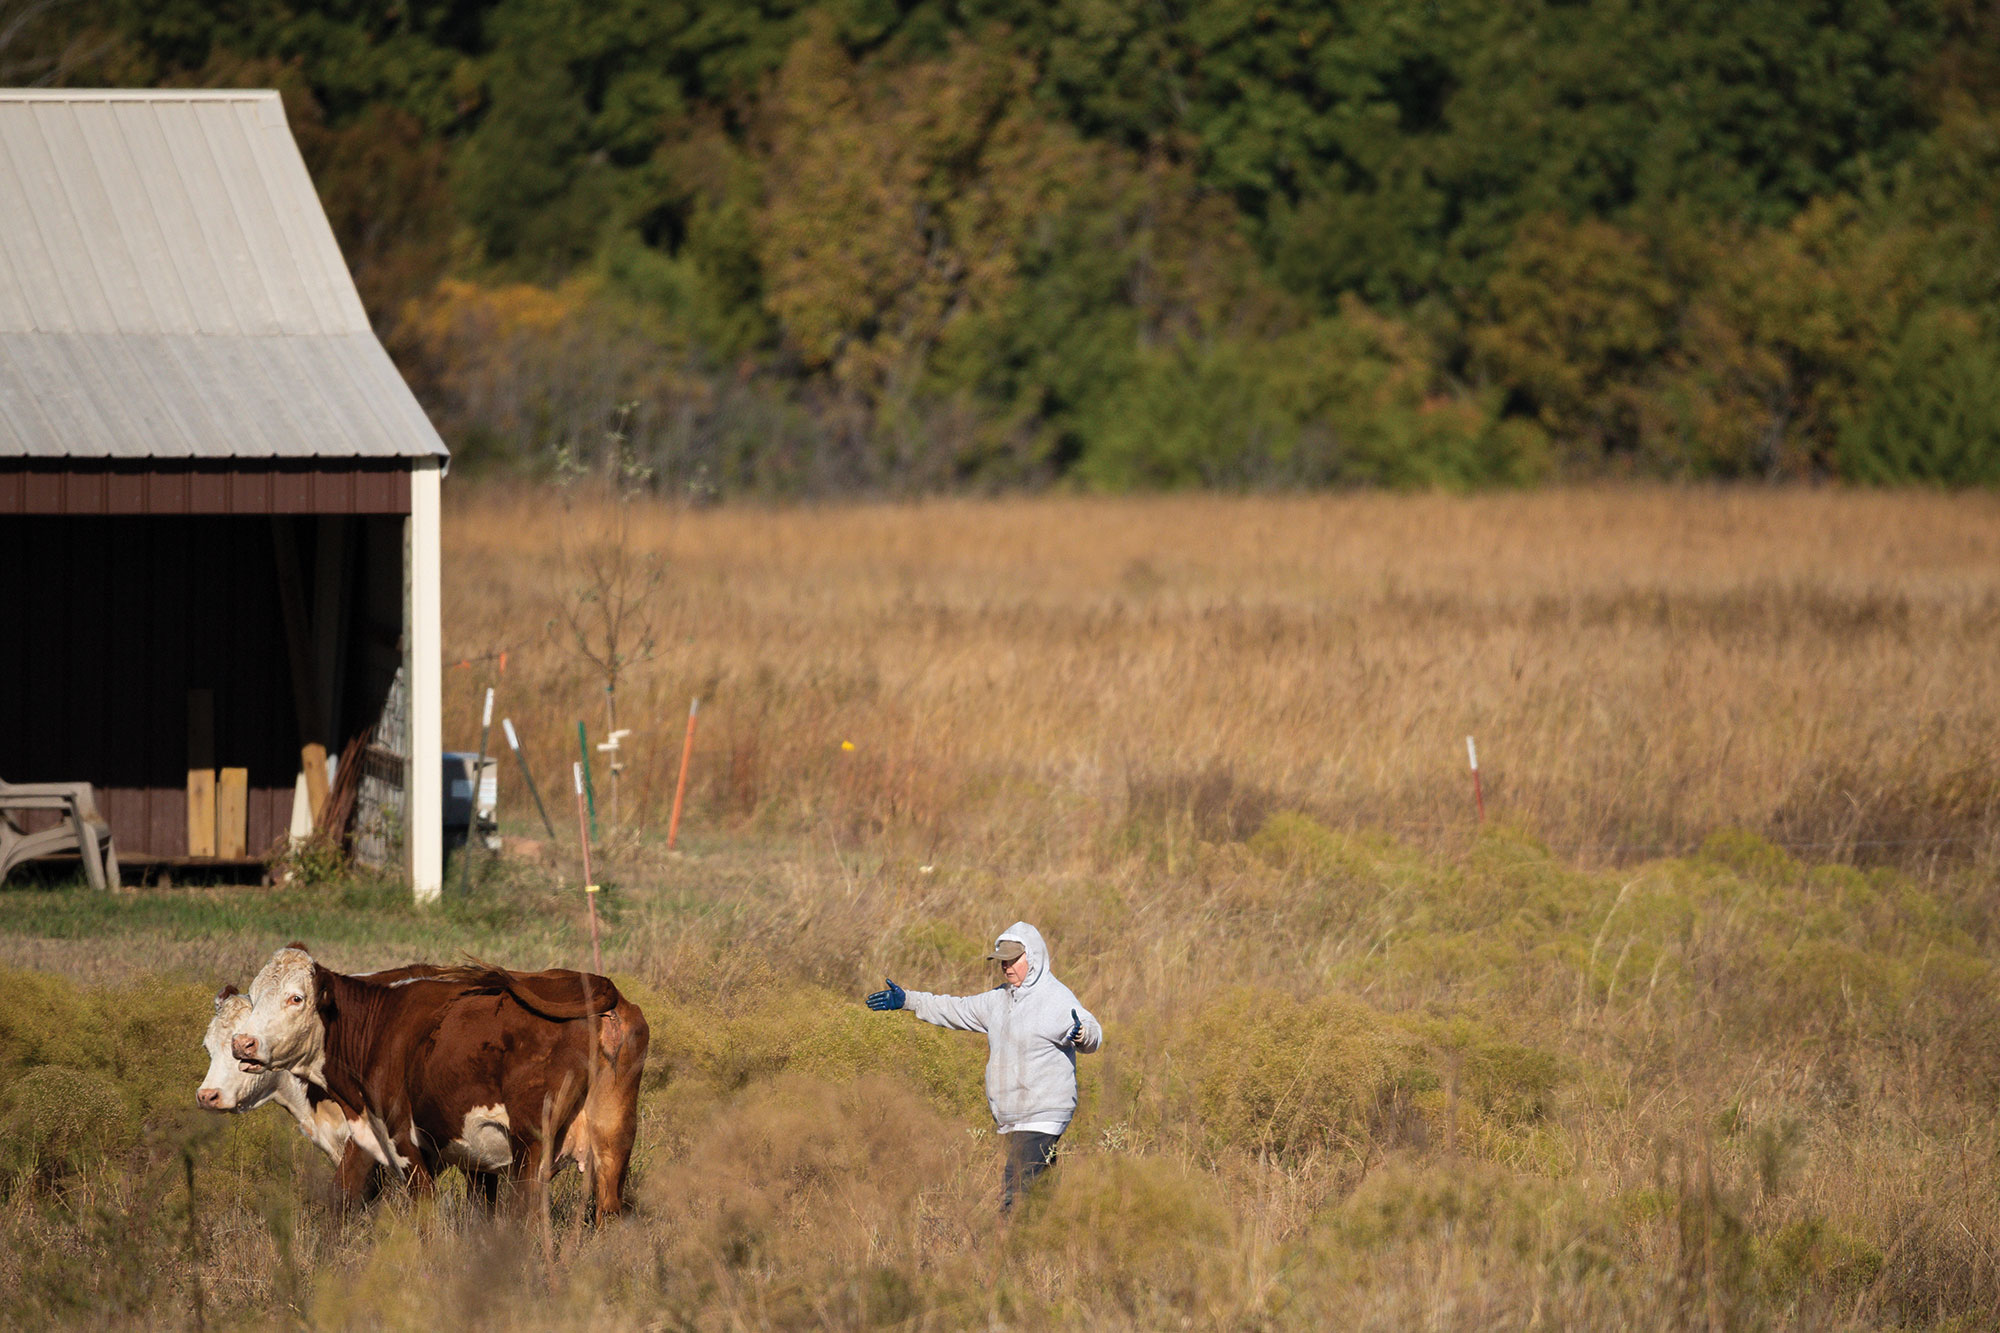 Karen Payne (pictured) and her husband, William, raise Hereford and Angus cattle on Destiny Ranch, which was in poor condition when they bought it in 2006.